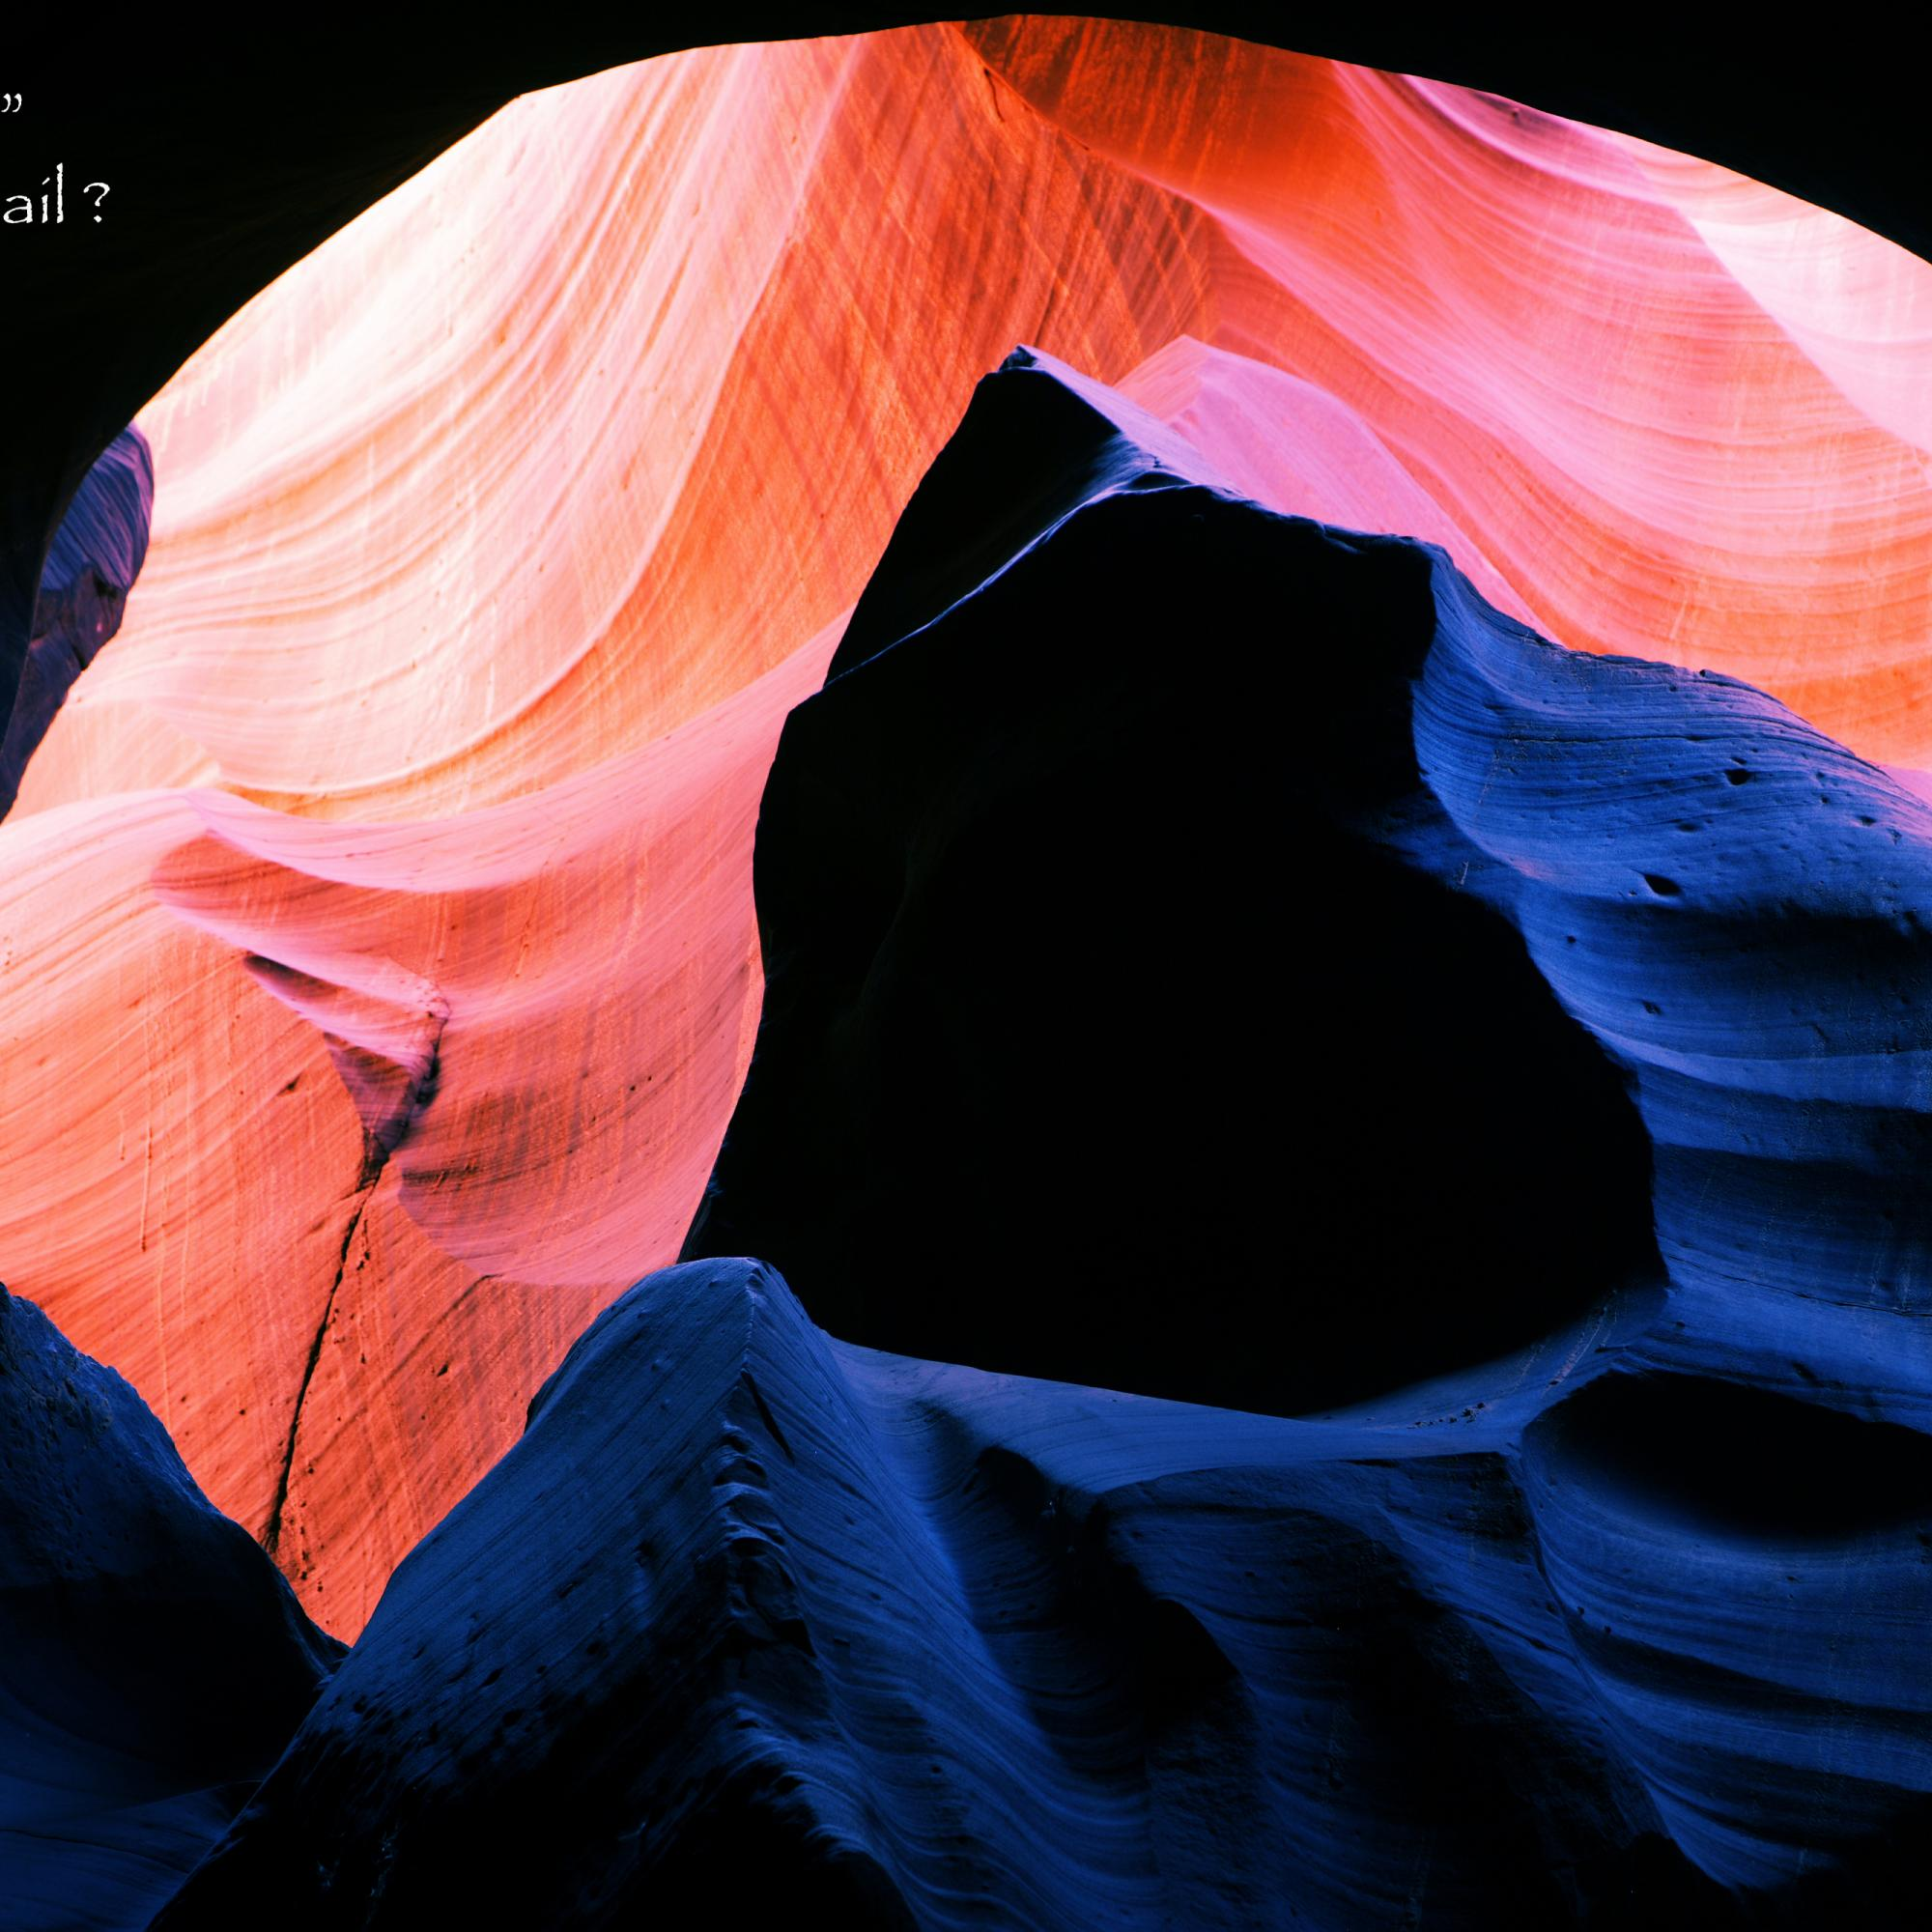 Fire & Ice in the Slot Canyons